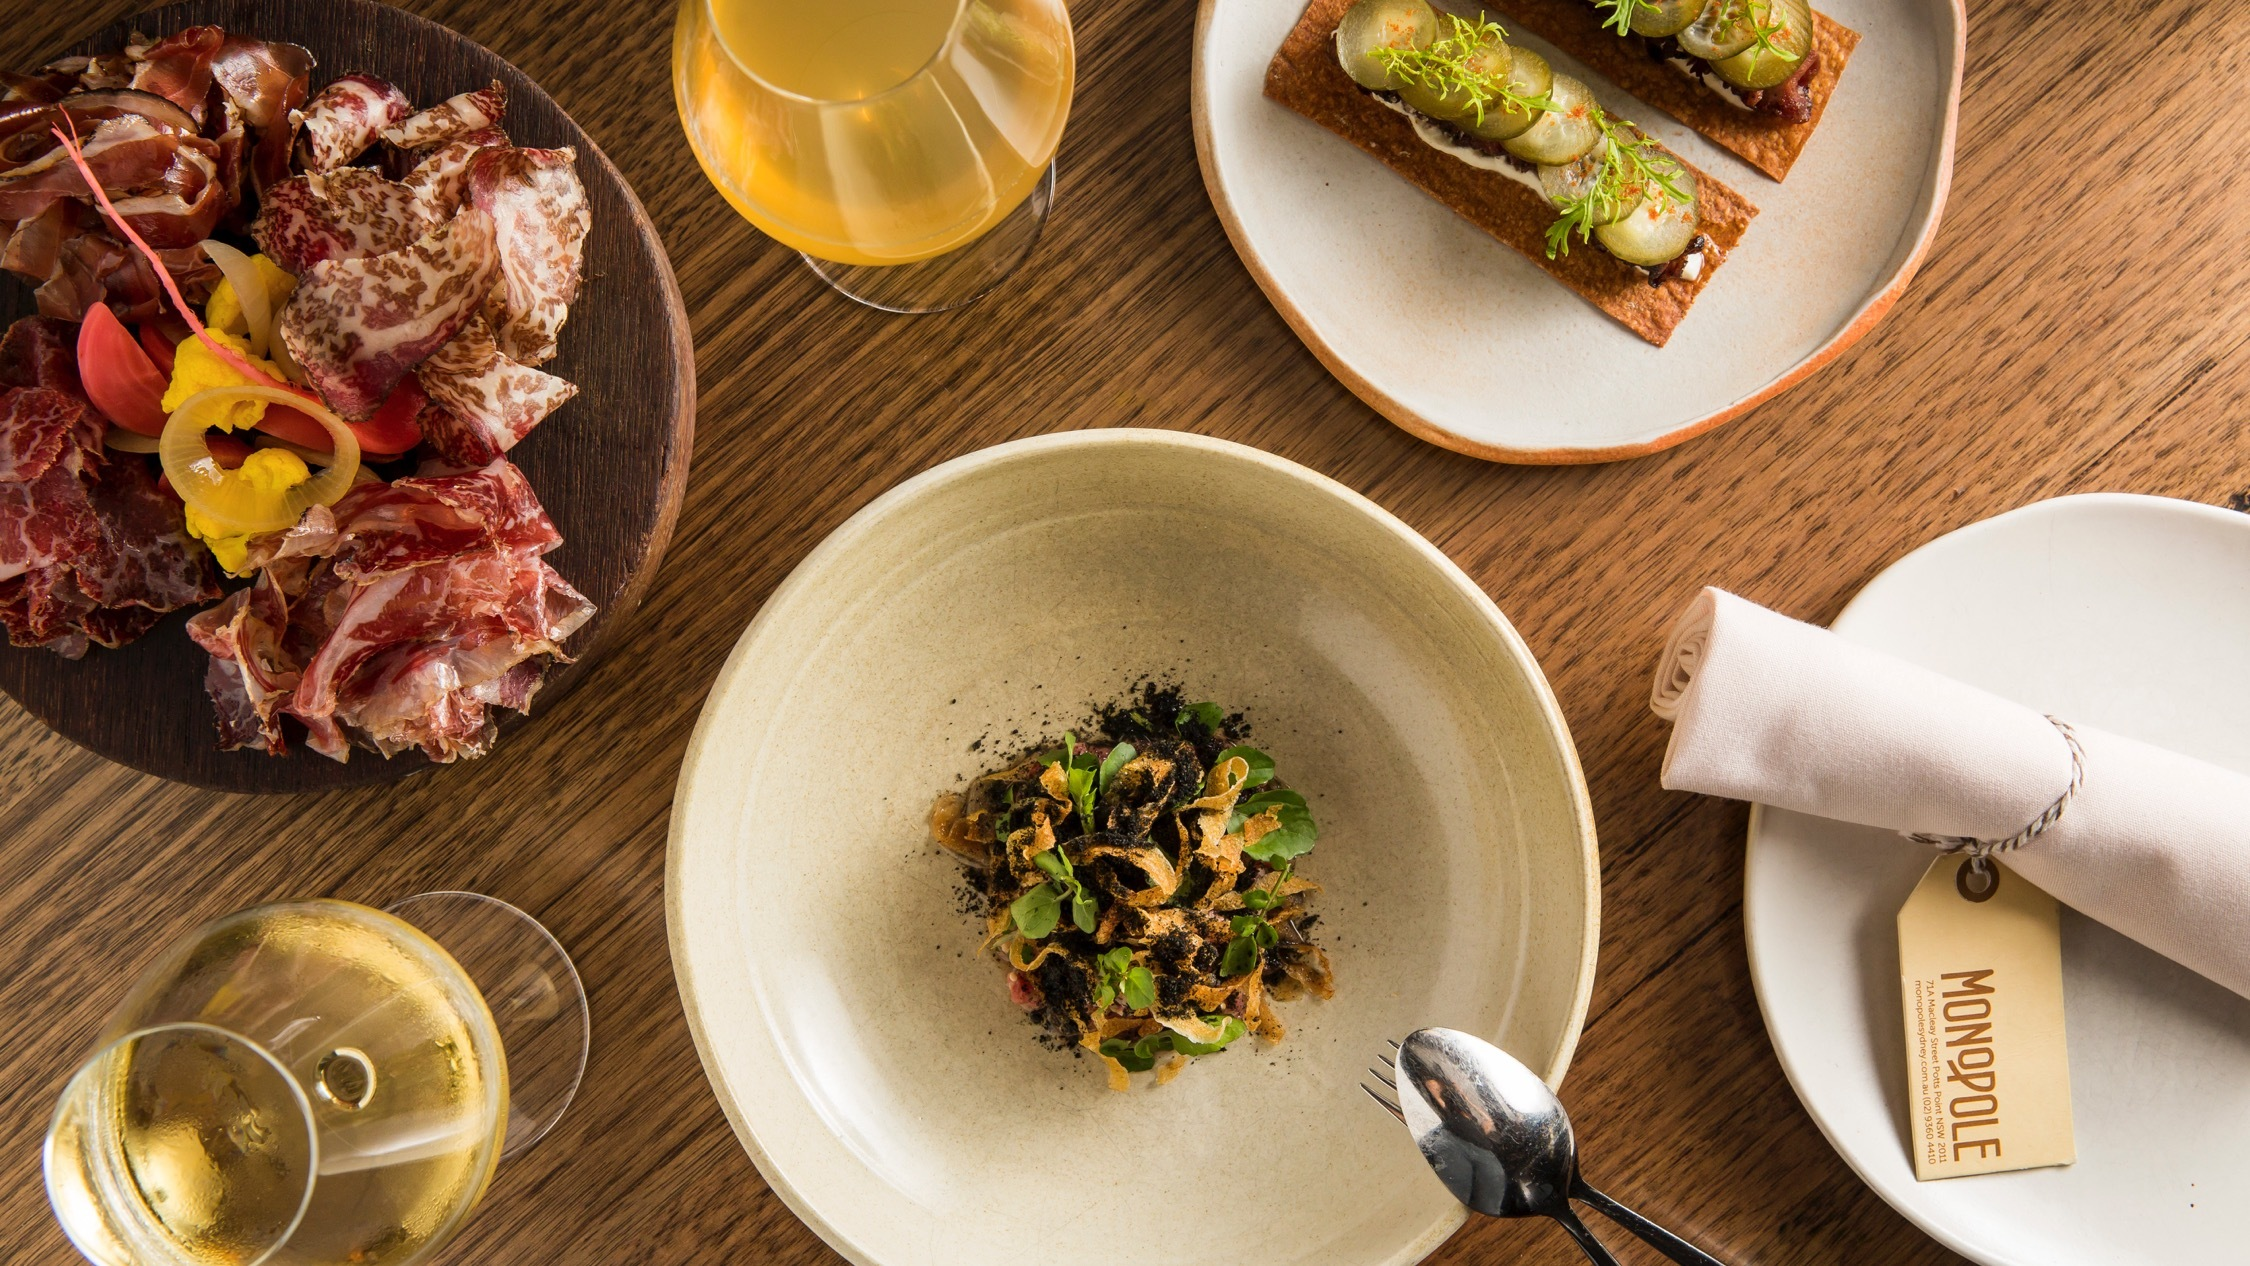 The Best Restaurants In Sydney - Artist creates perfect fusion photography amazing baking end result coolest food ever